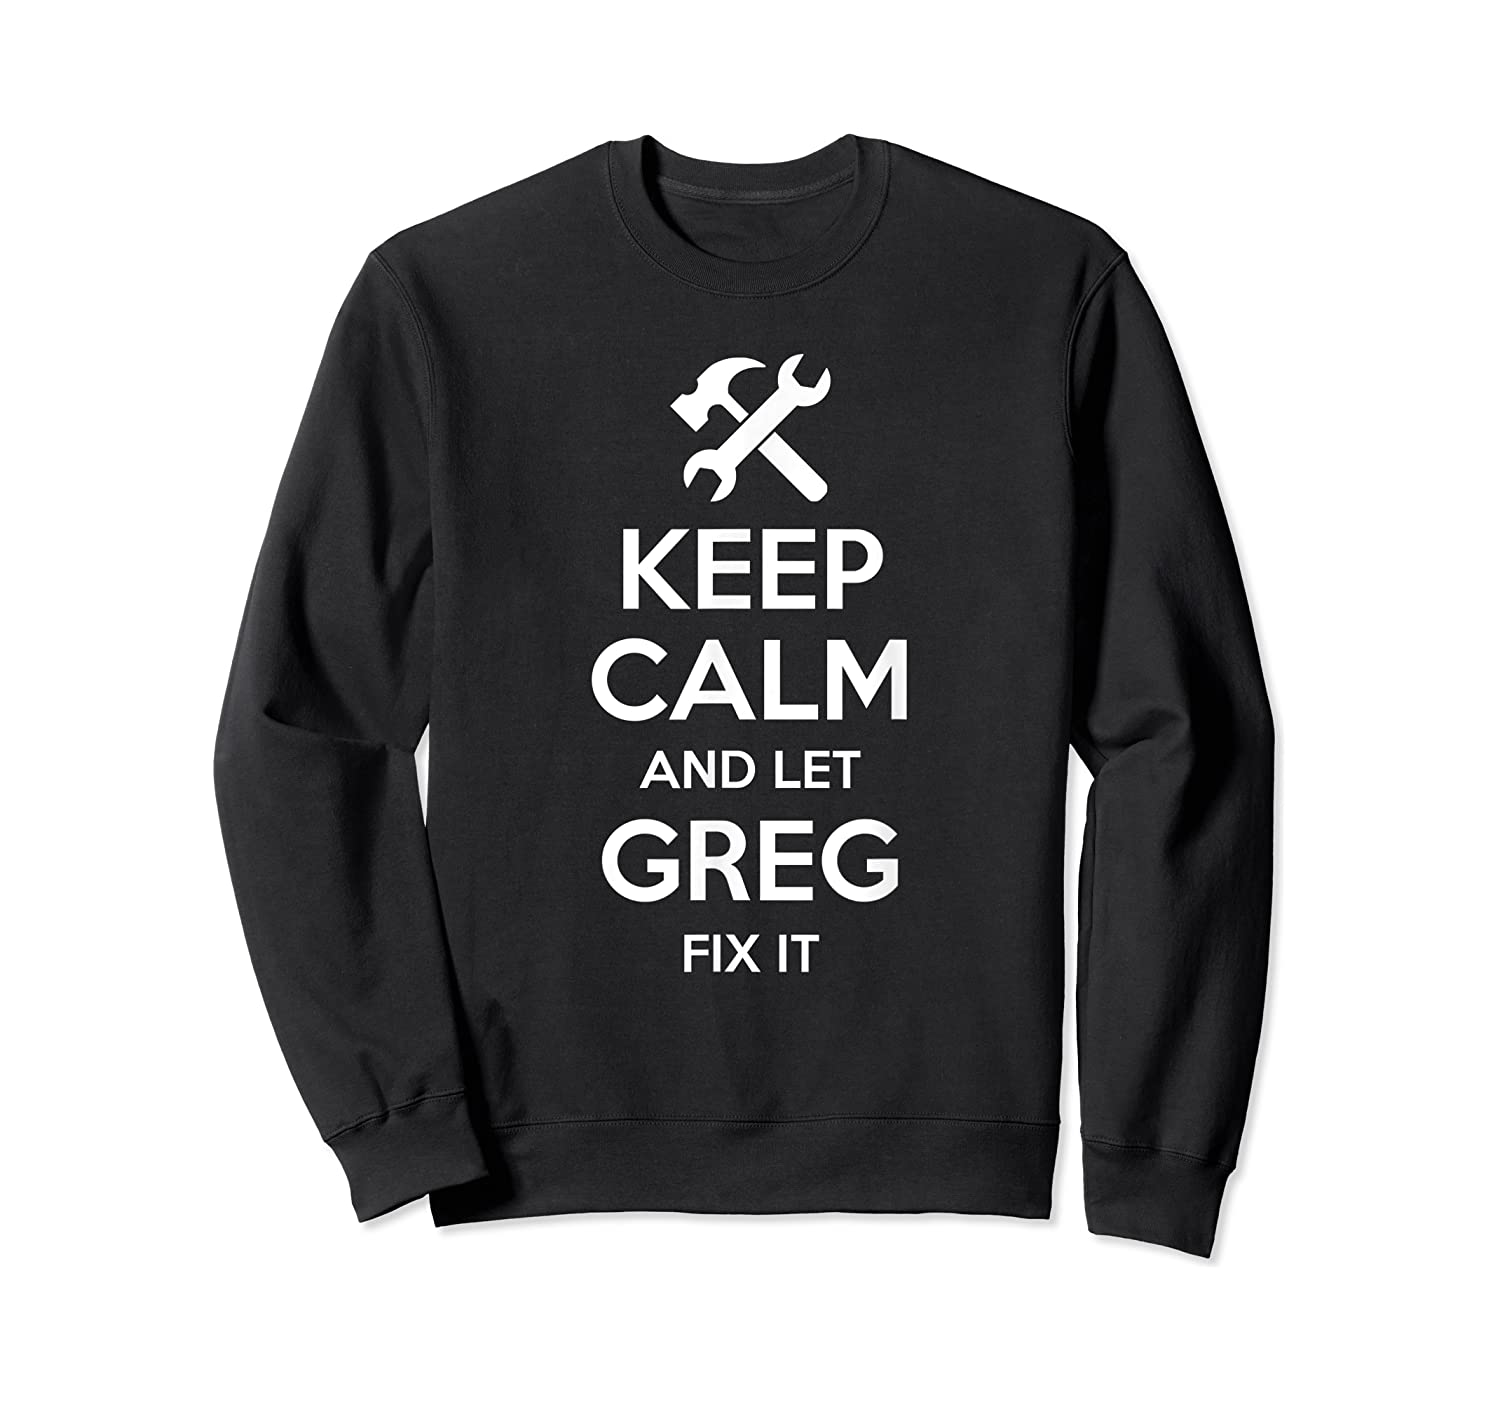 Fix Quote Funny Birthday Personalized Name Gift Idea Shirts Crewneck Sweater